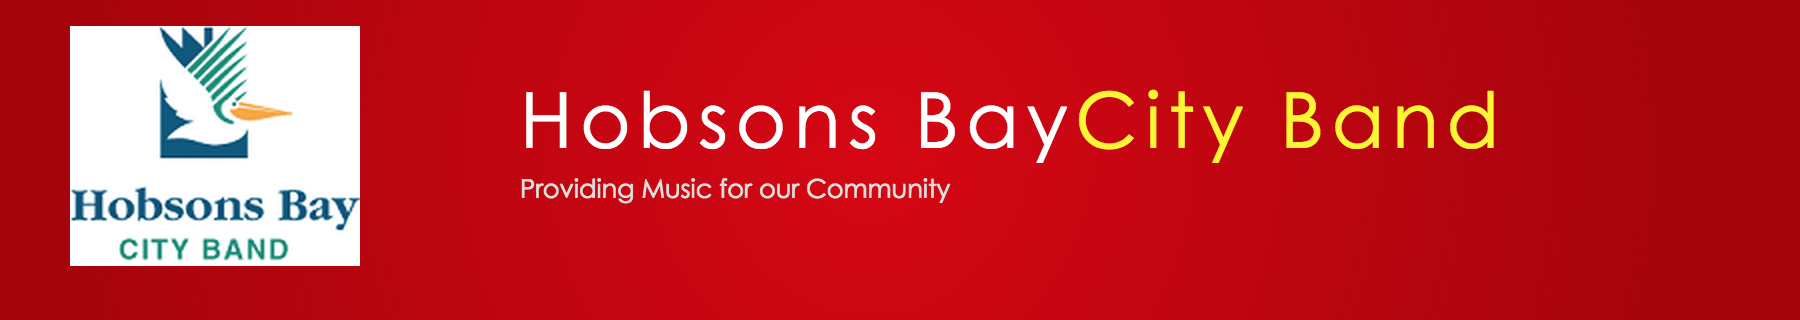 Hobsons Bay City Band